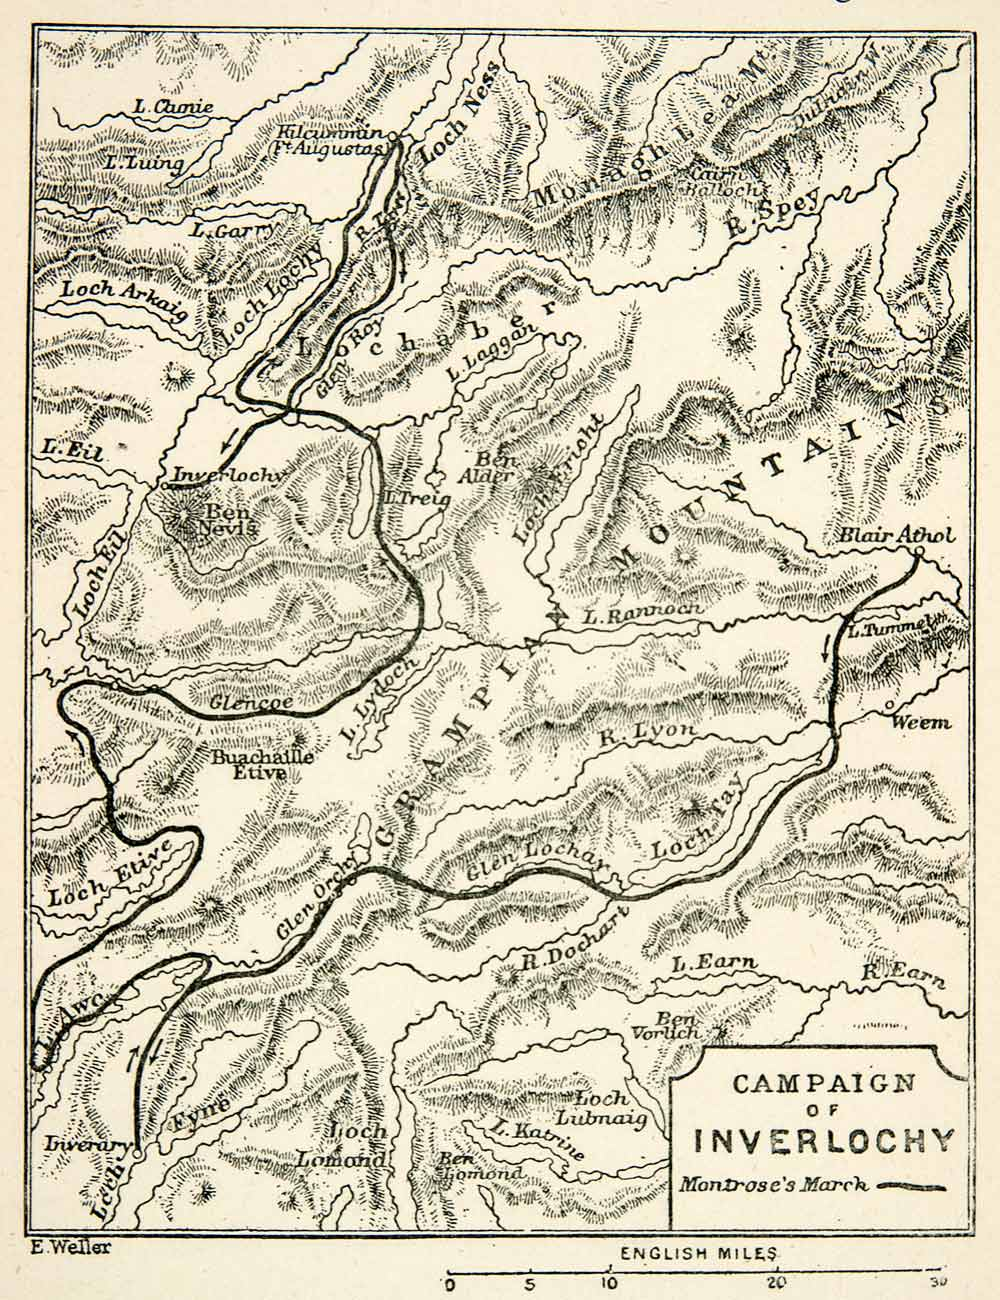 A map of the Campaign of Inverlochy.